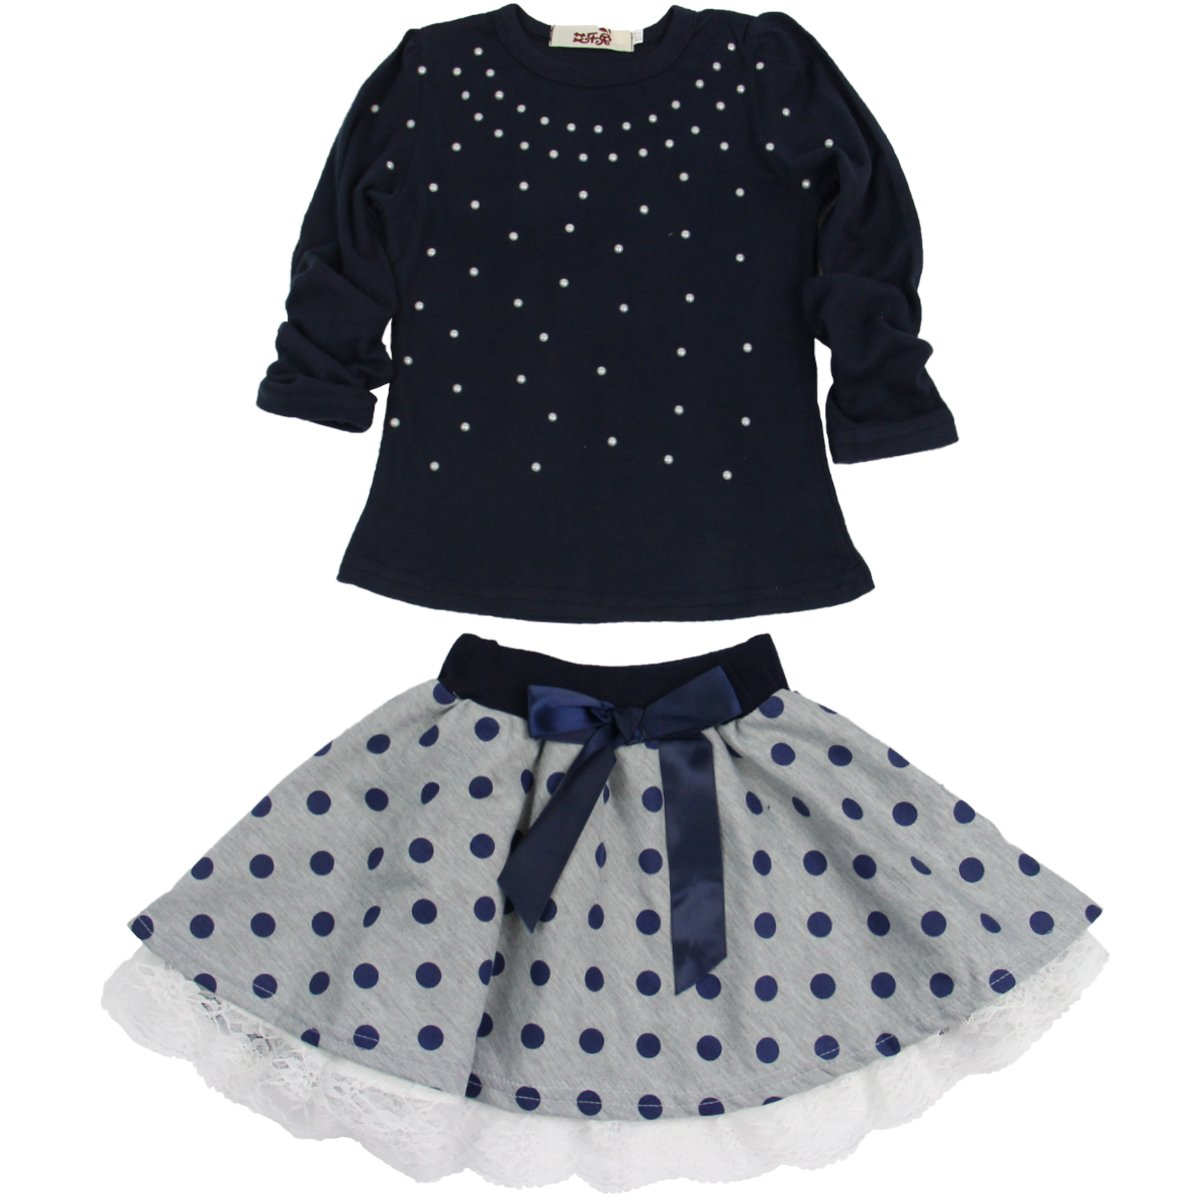 Jastore Kids Girl Cute 2PCS Diamond Clothing Set Long Sleeve Top +Dot Tutu Skirt